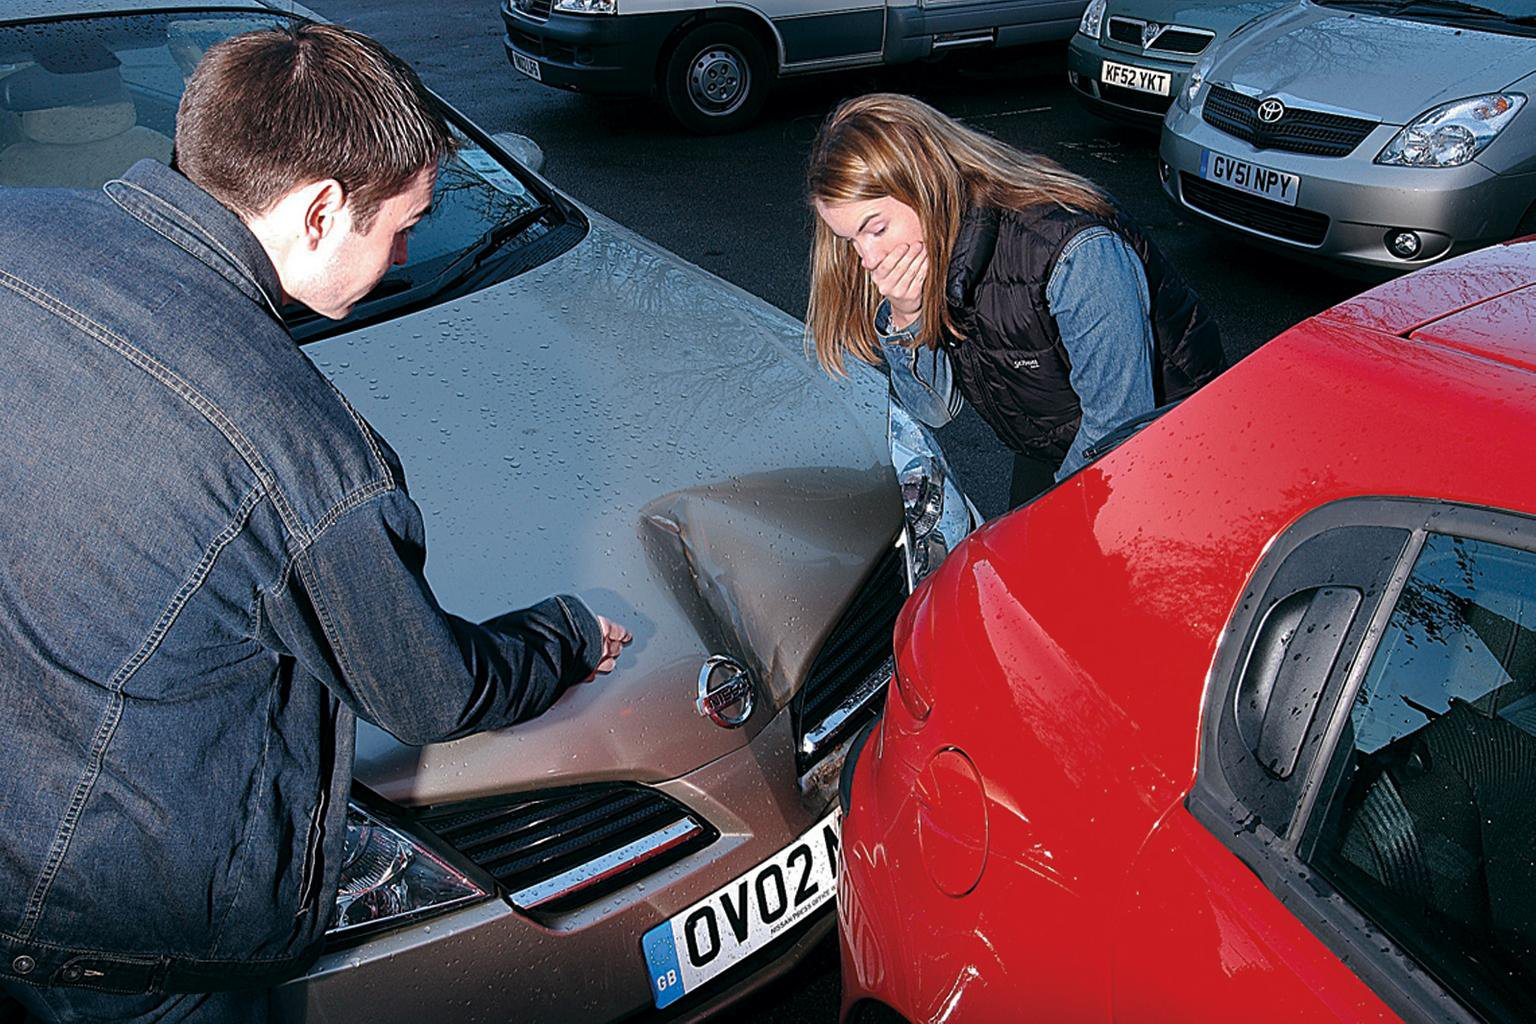 Drivers 'pay 200m too much' for car insurance